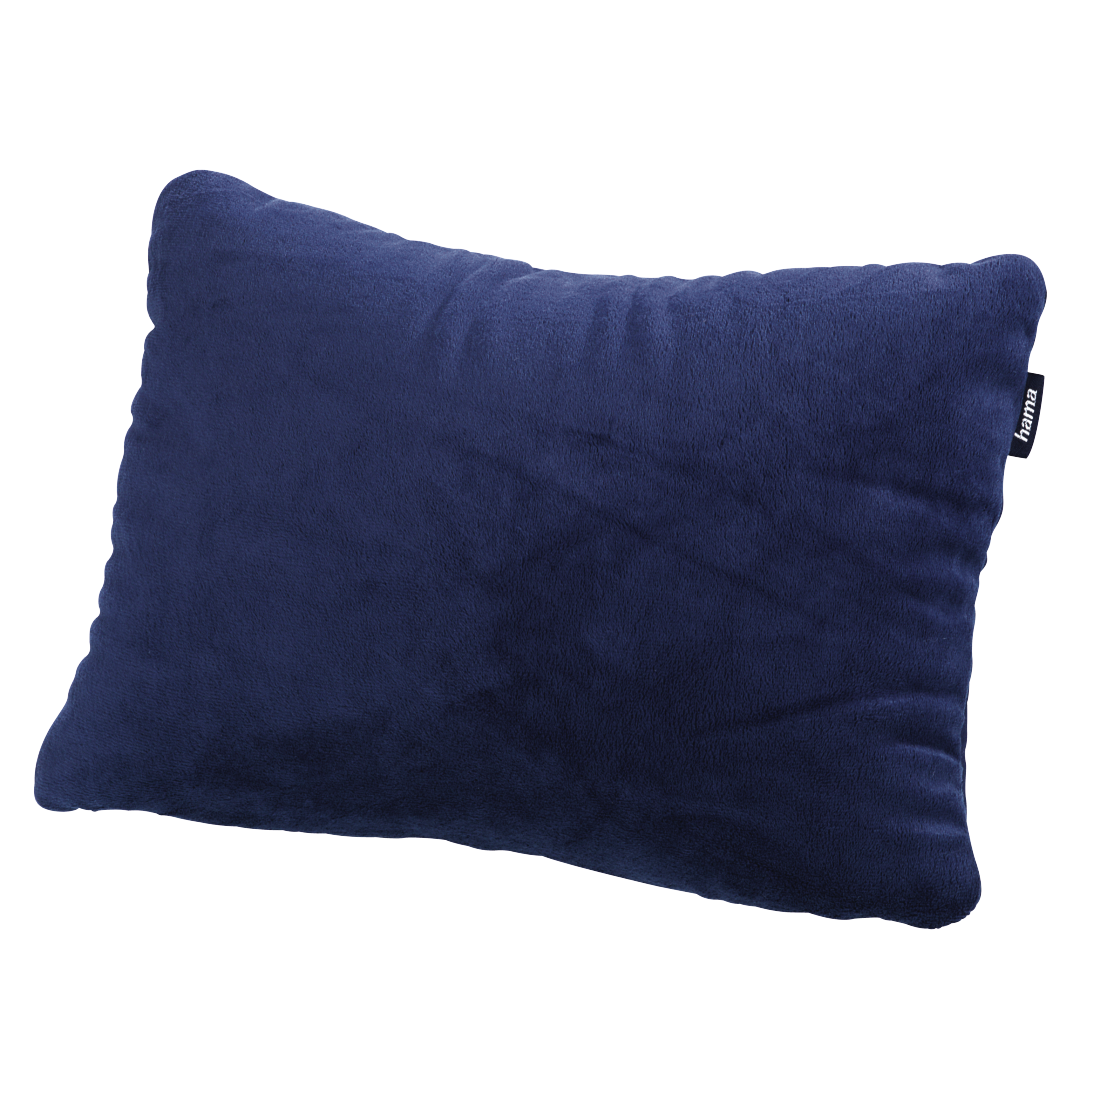 abx2 High-Res Image 2 - Hama, 2in1 Microbead Travel Pillow, dark blue